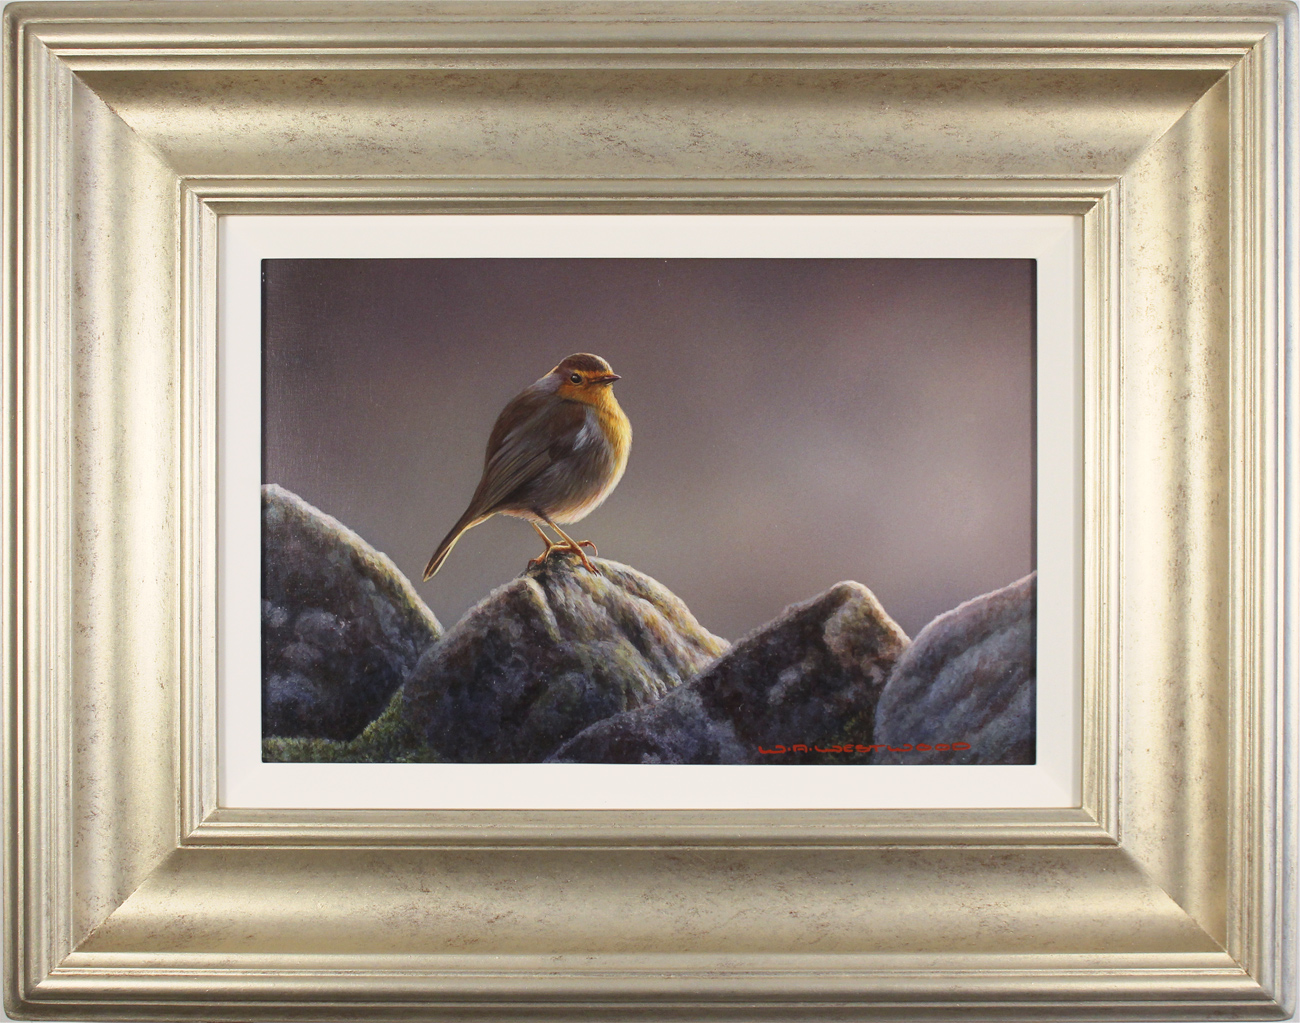 Wayne Westwood, Original oil painting on panel, The Country Robin Click to enlarge